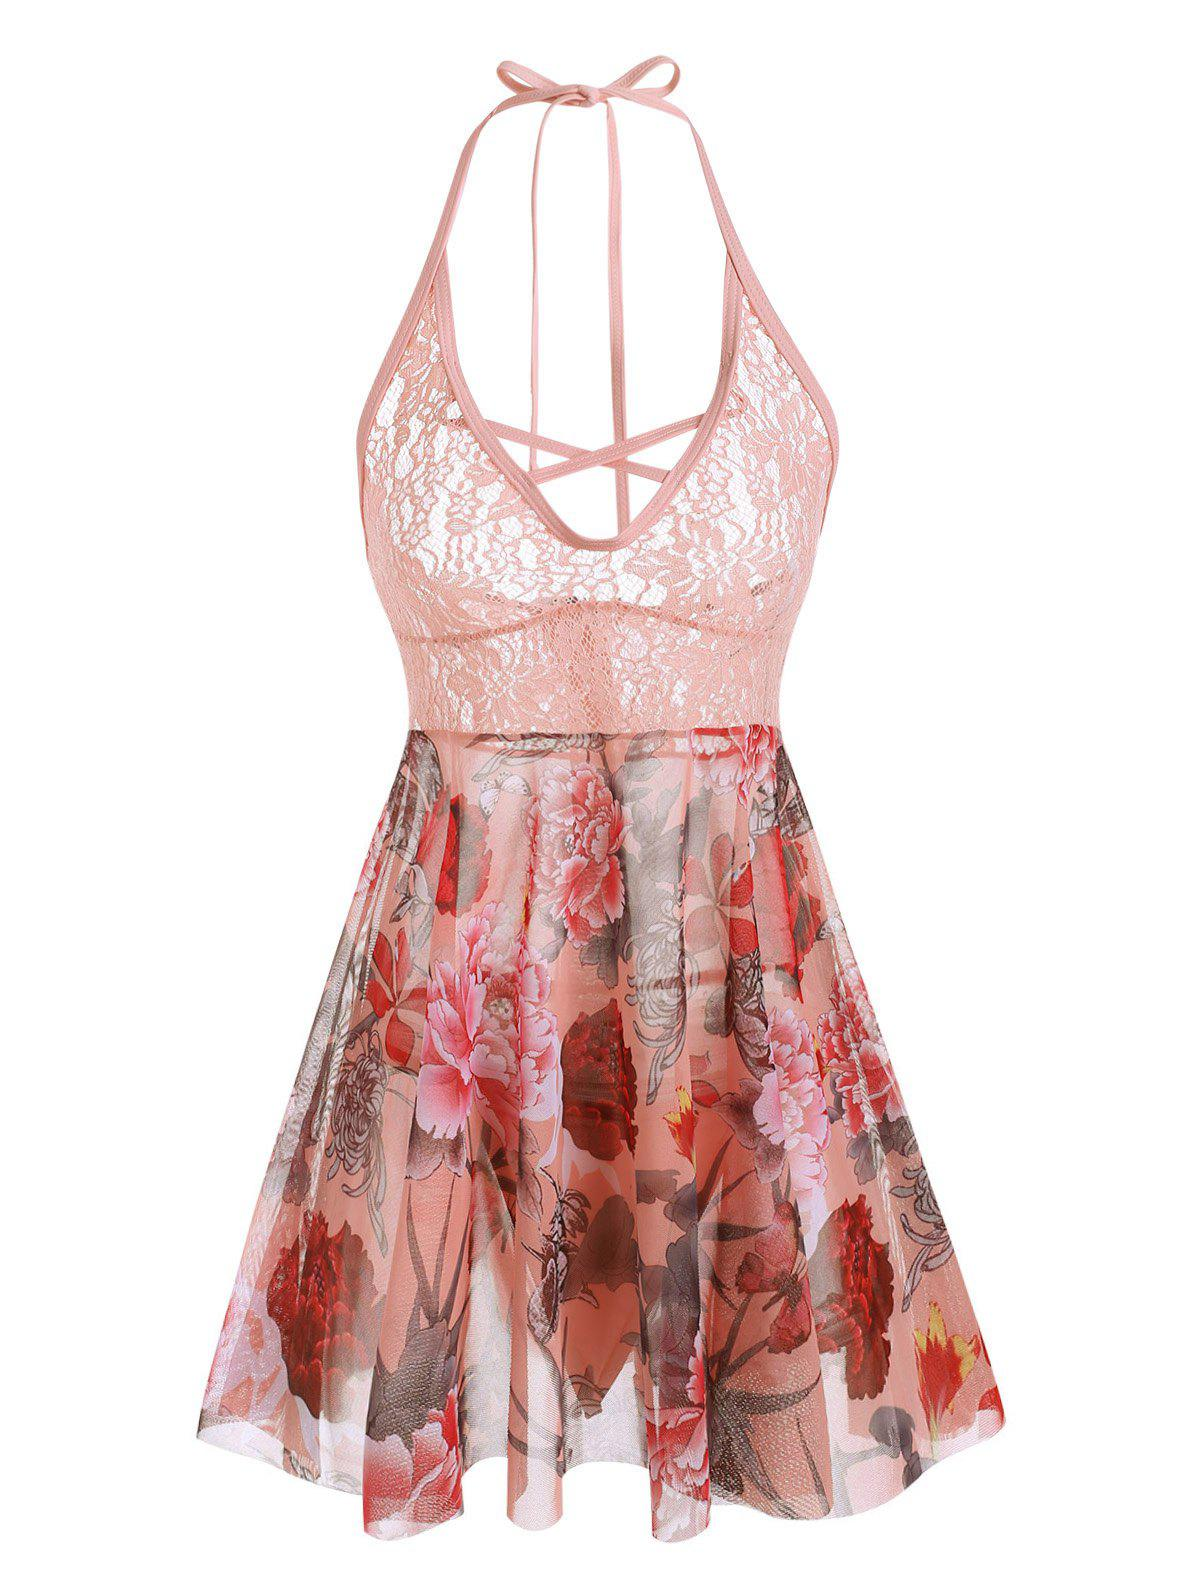 Sale Plus Size Halter Lace Insert Backless Floral Babydoll Set